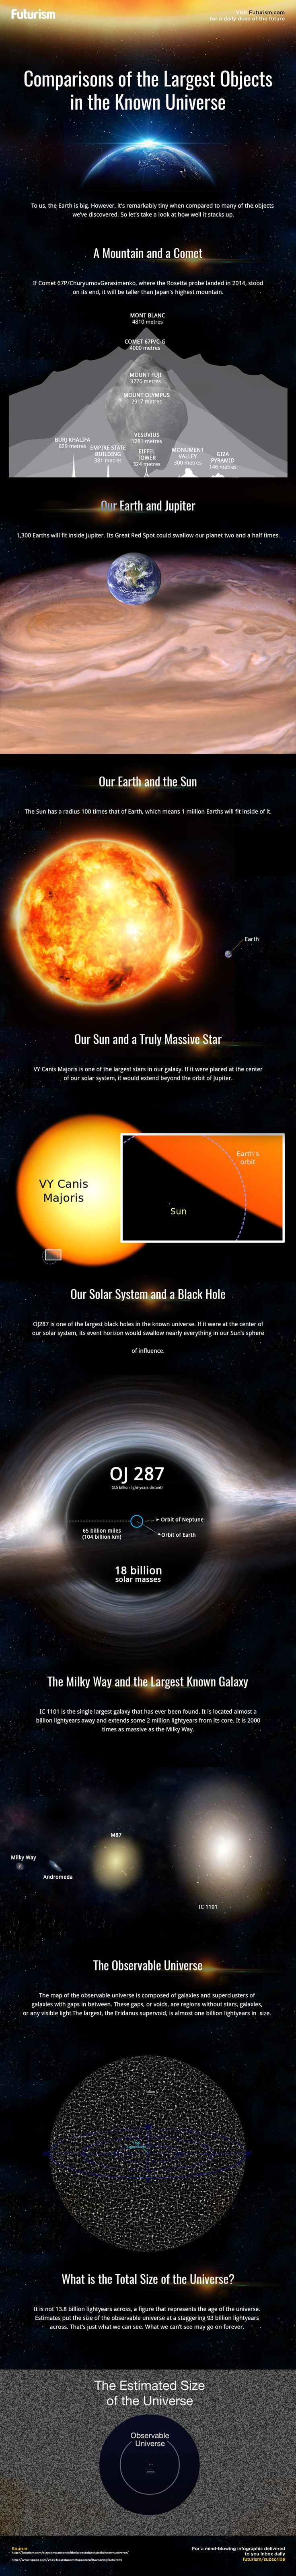 Comparing-Sizes-of-the-Largest-Objects in the known universe